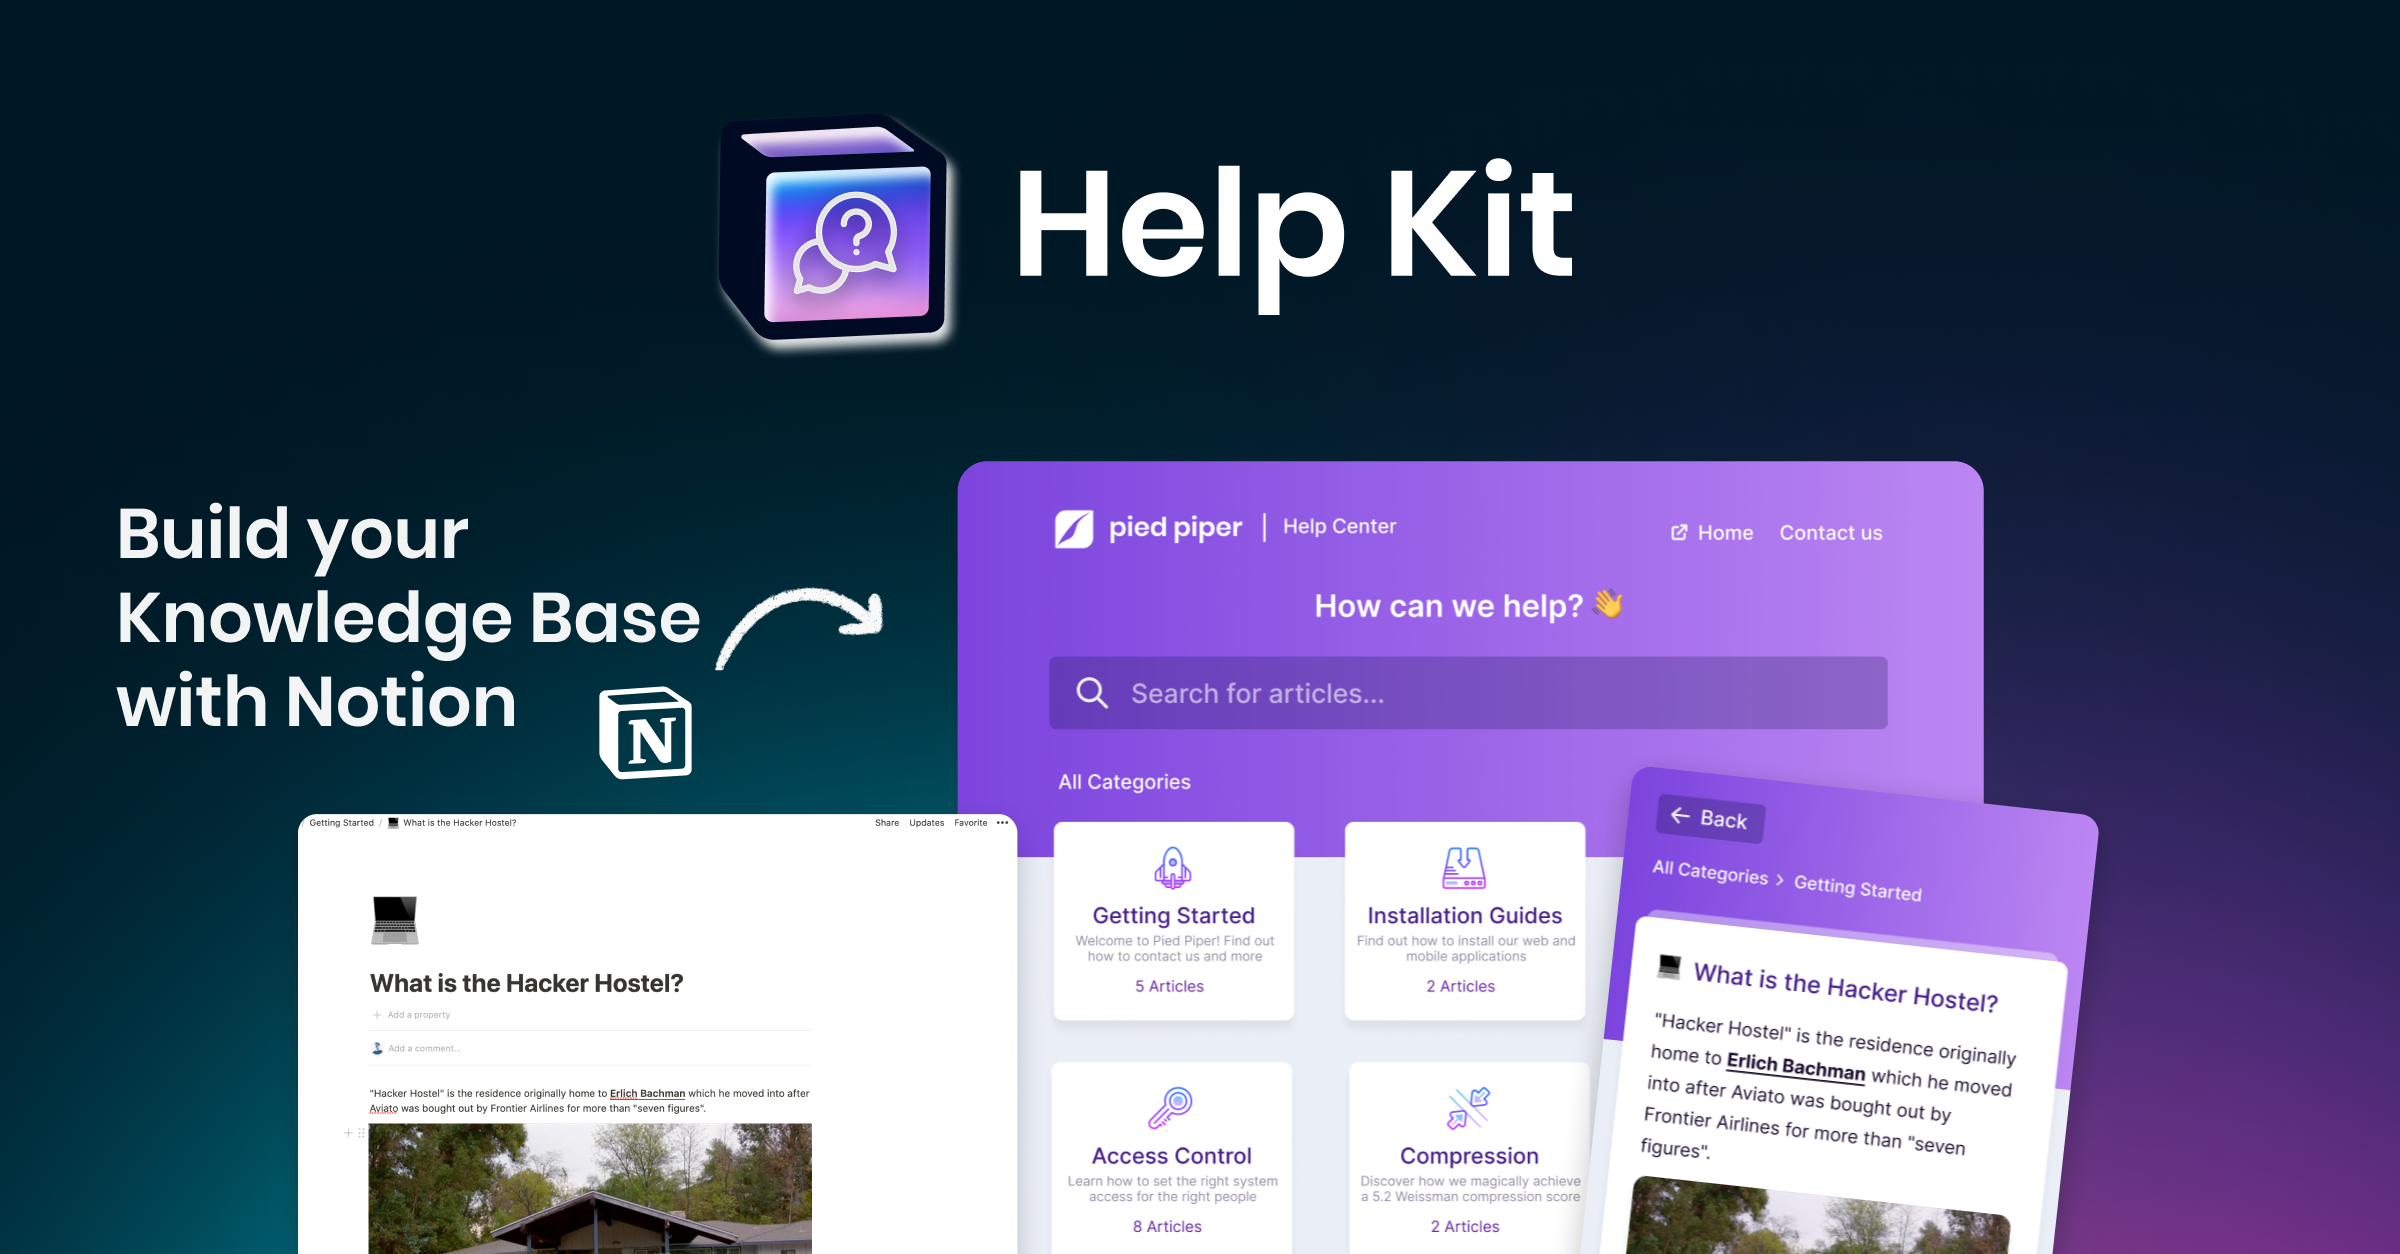 HelpKit - Build your Knowledge Base with the ease of Notion